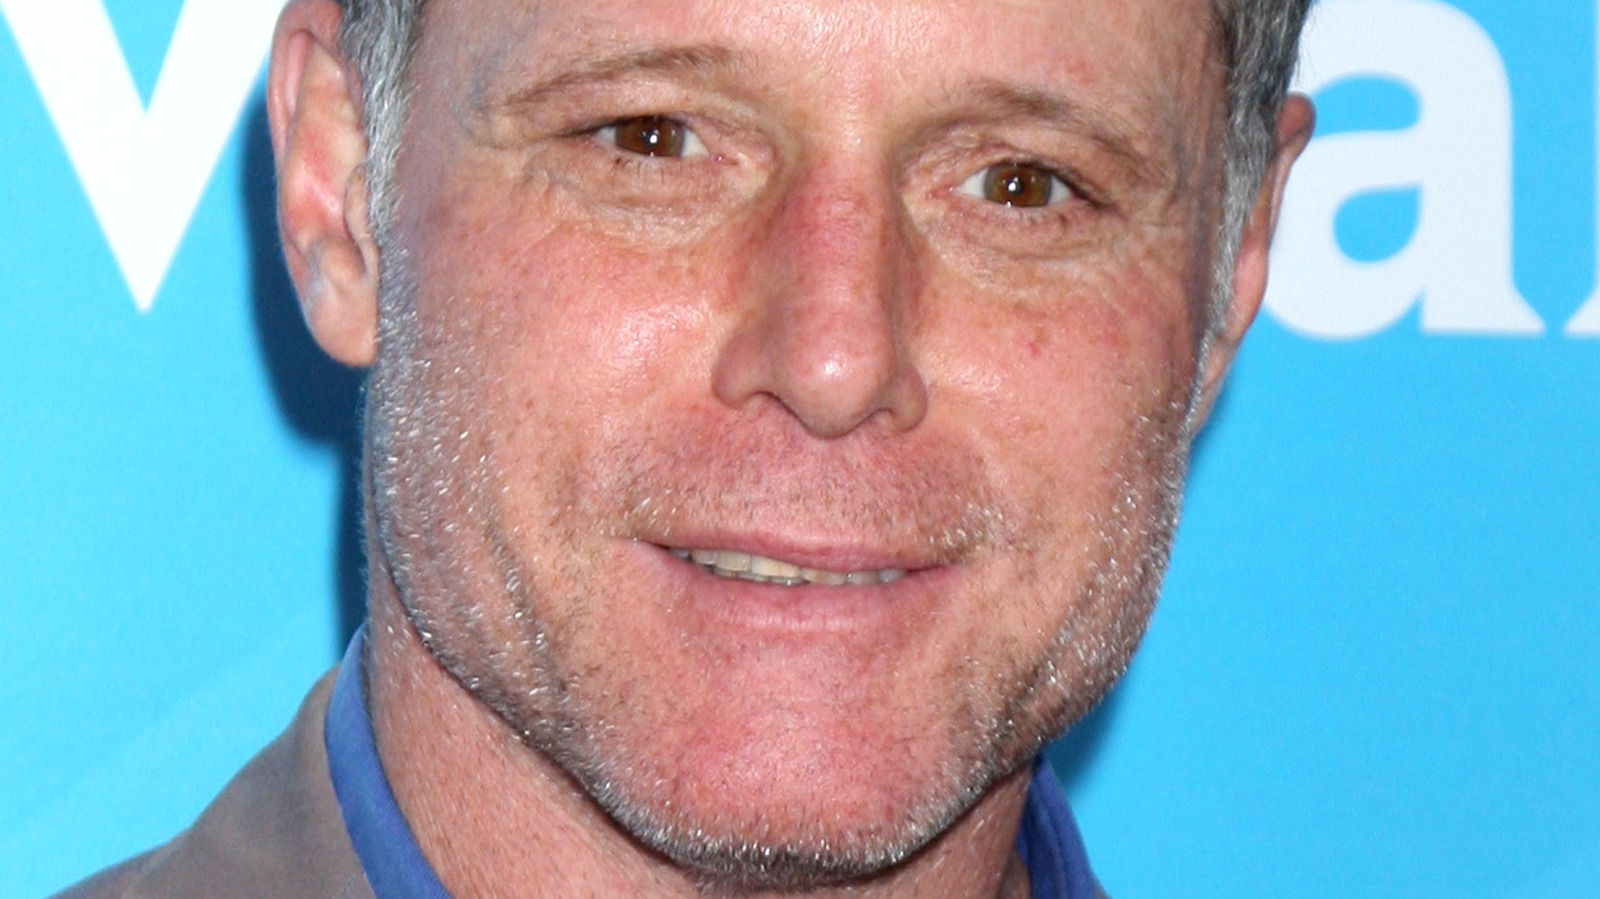 The Truth About Jason Beghe's Connection To Scientology